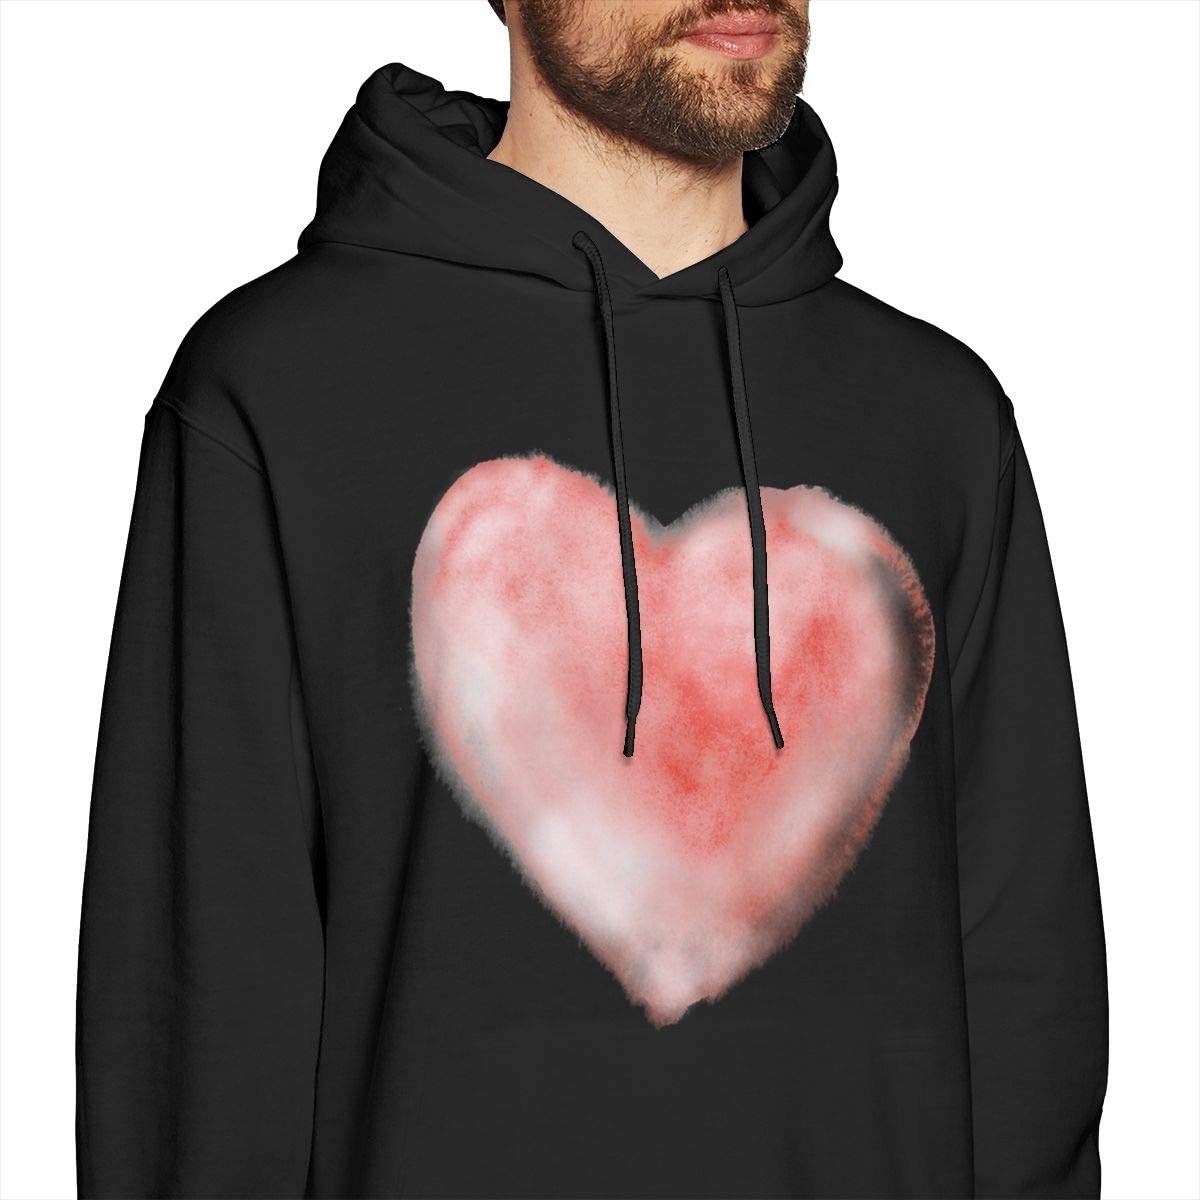 PCLOUD Men Cartoon Heart Warmth Black Hoodie Sweatshirt Jacket Pullover Tops